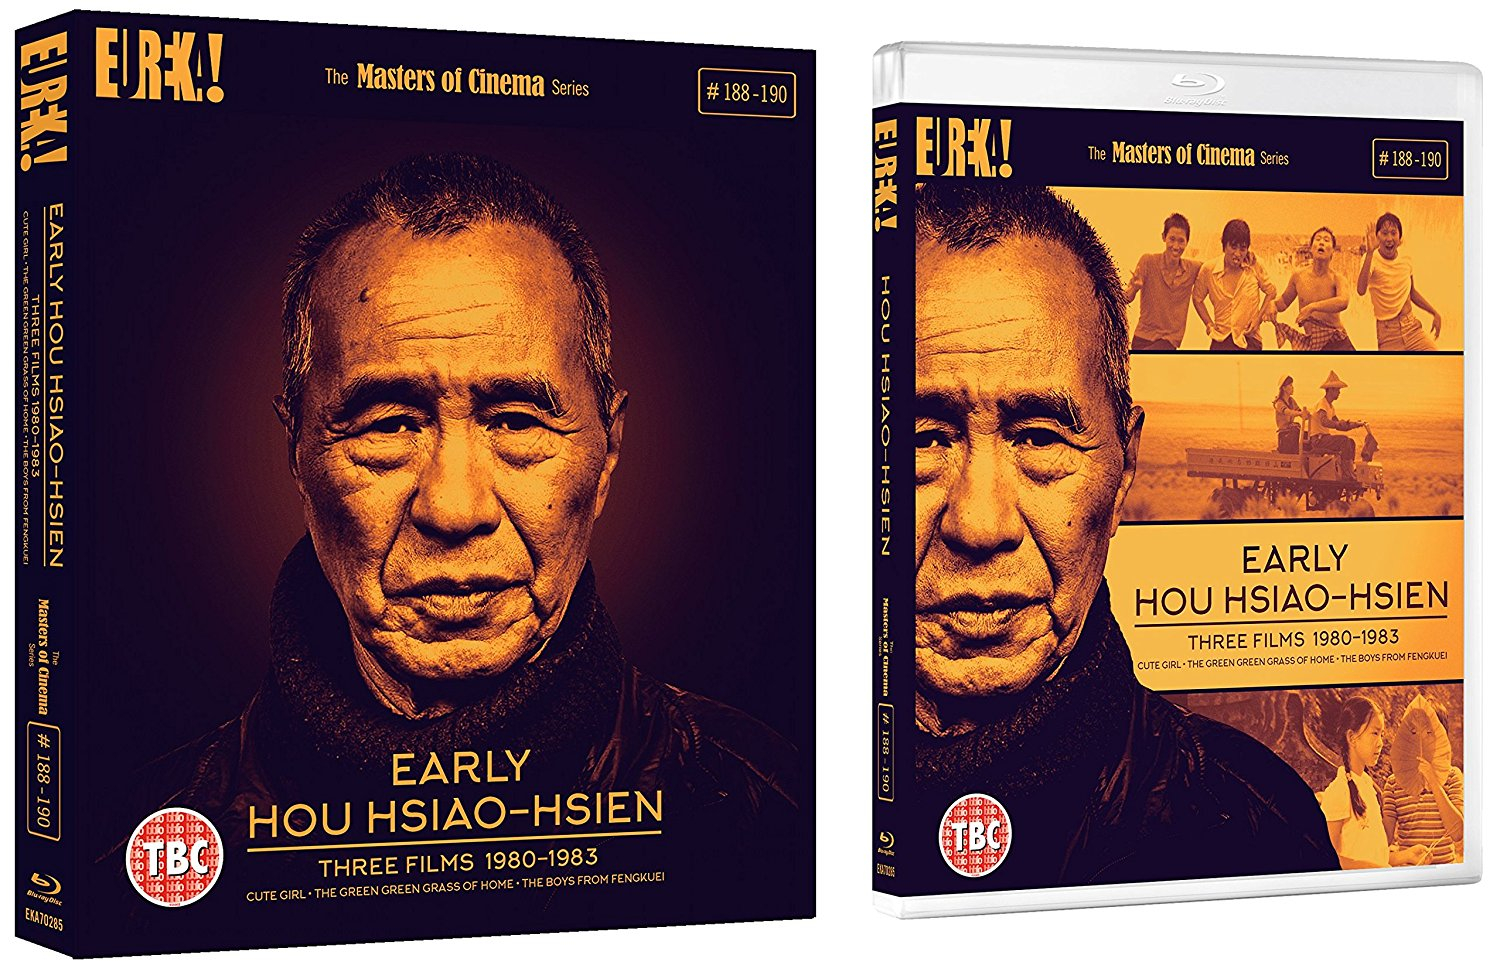 Buy Early Hou Hsiao-Hsien: Three Films 1980-1983